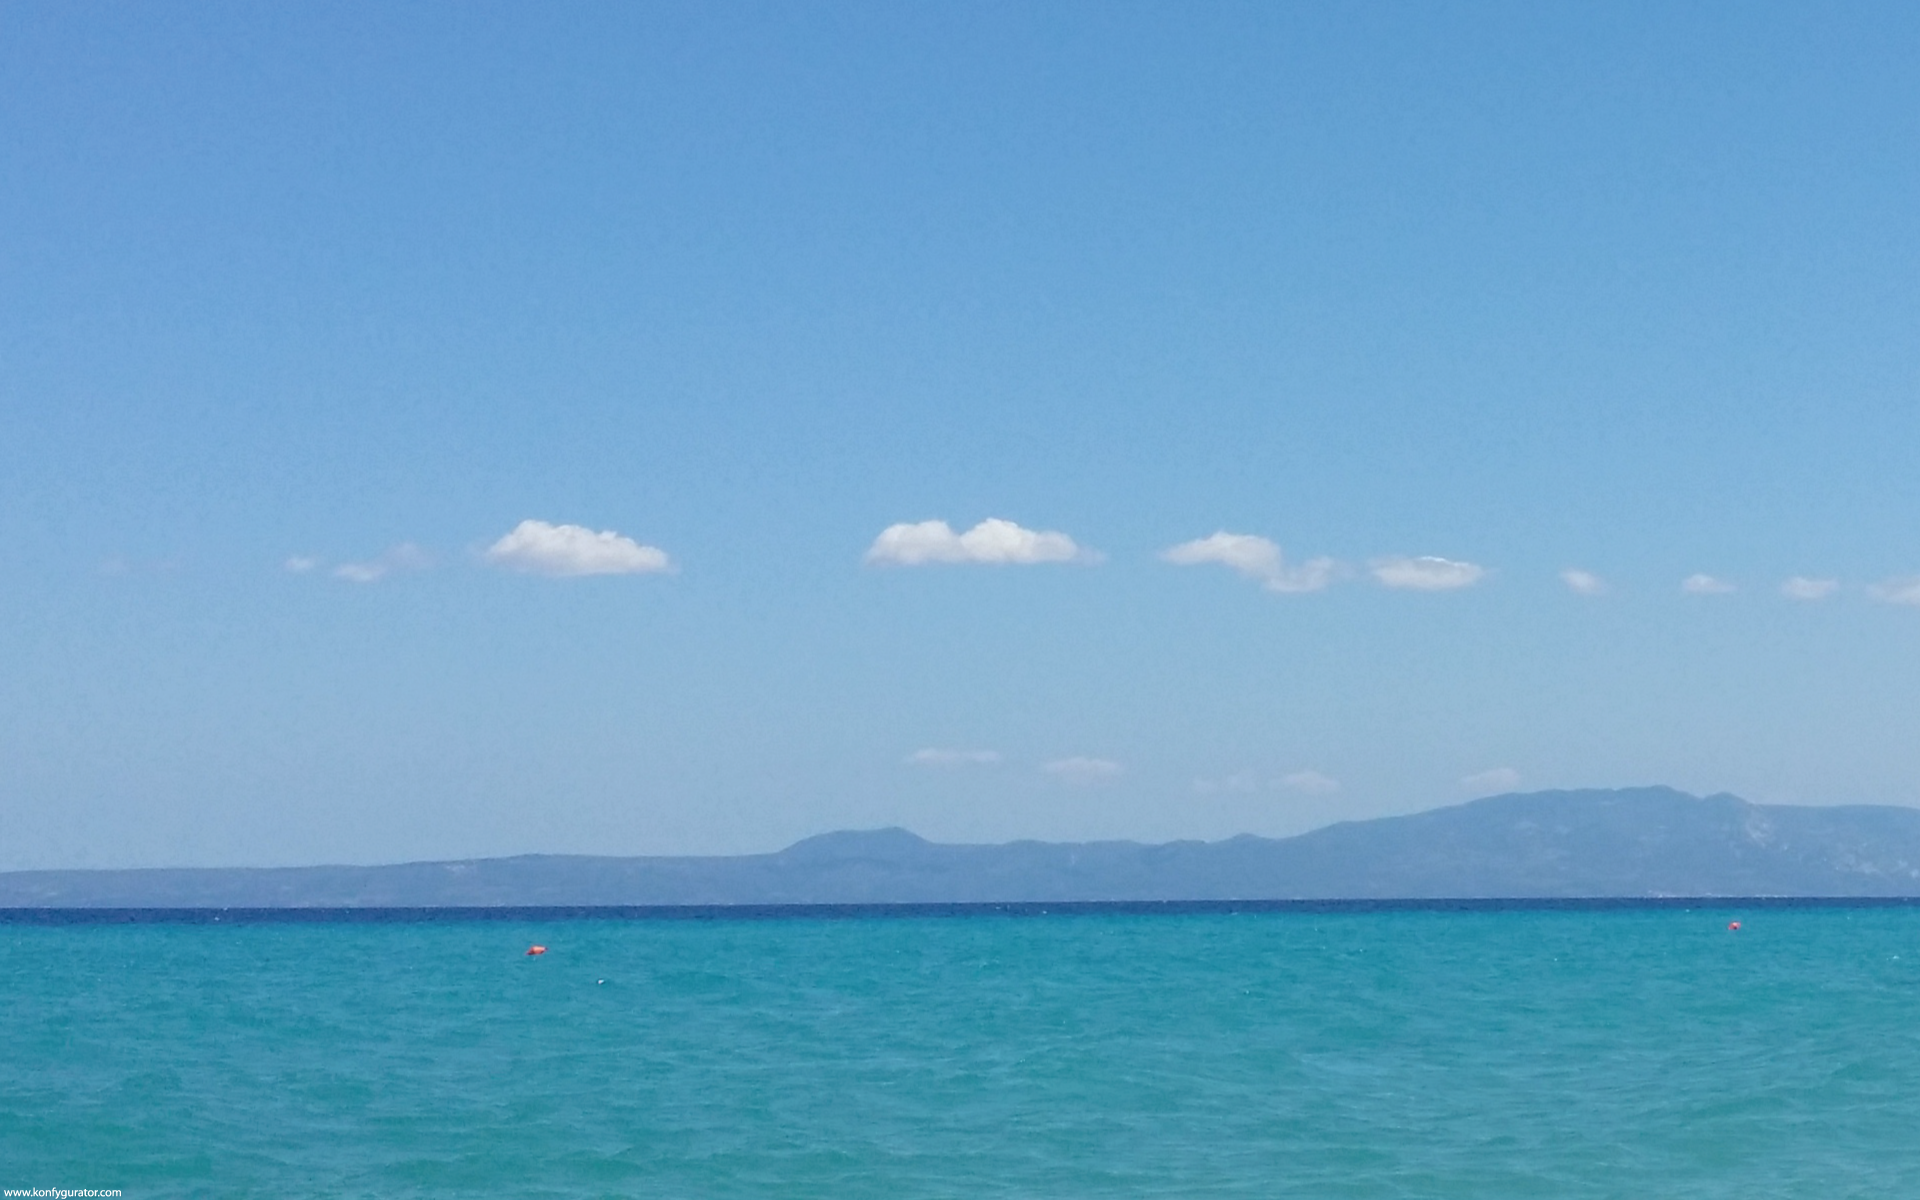 sea, distant mountains, blue sky